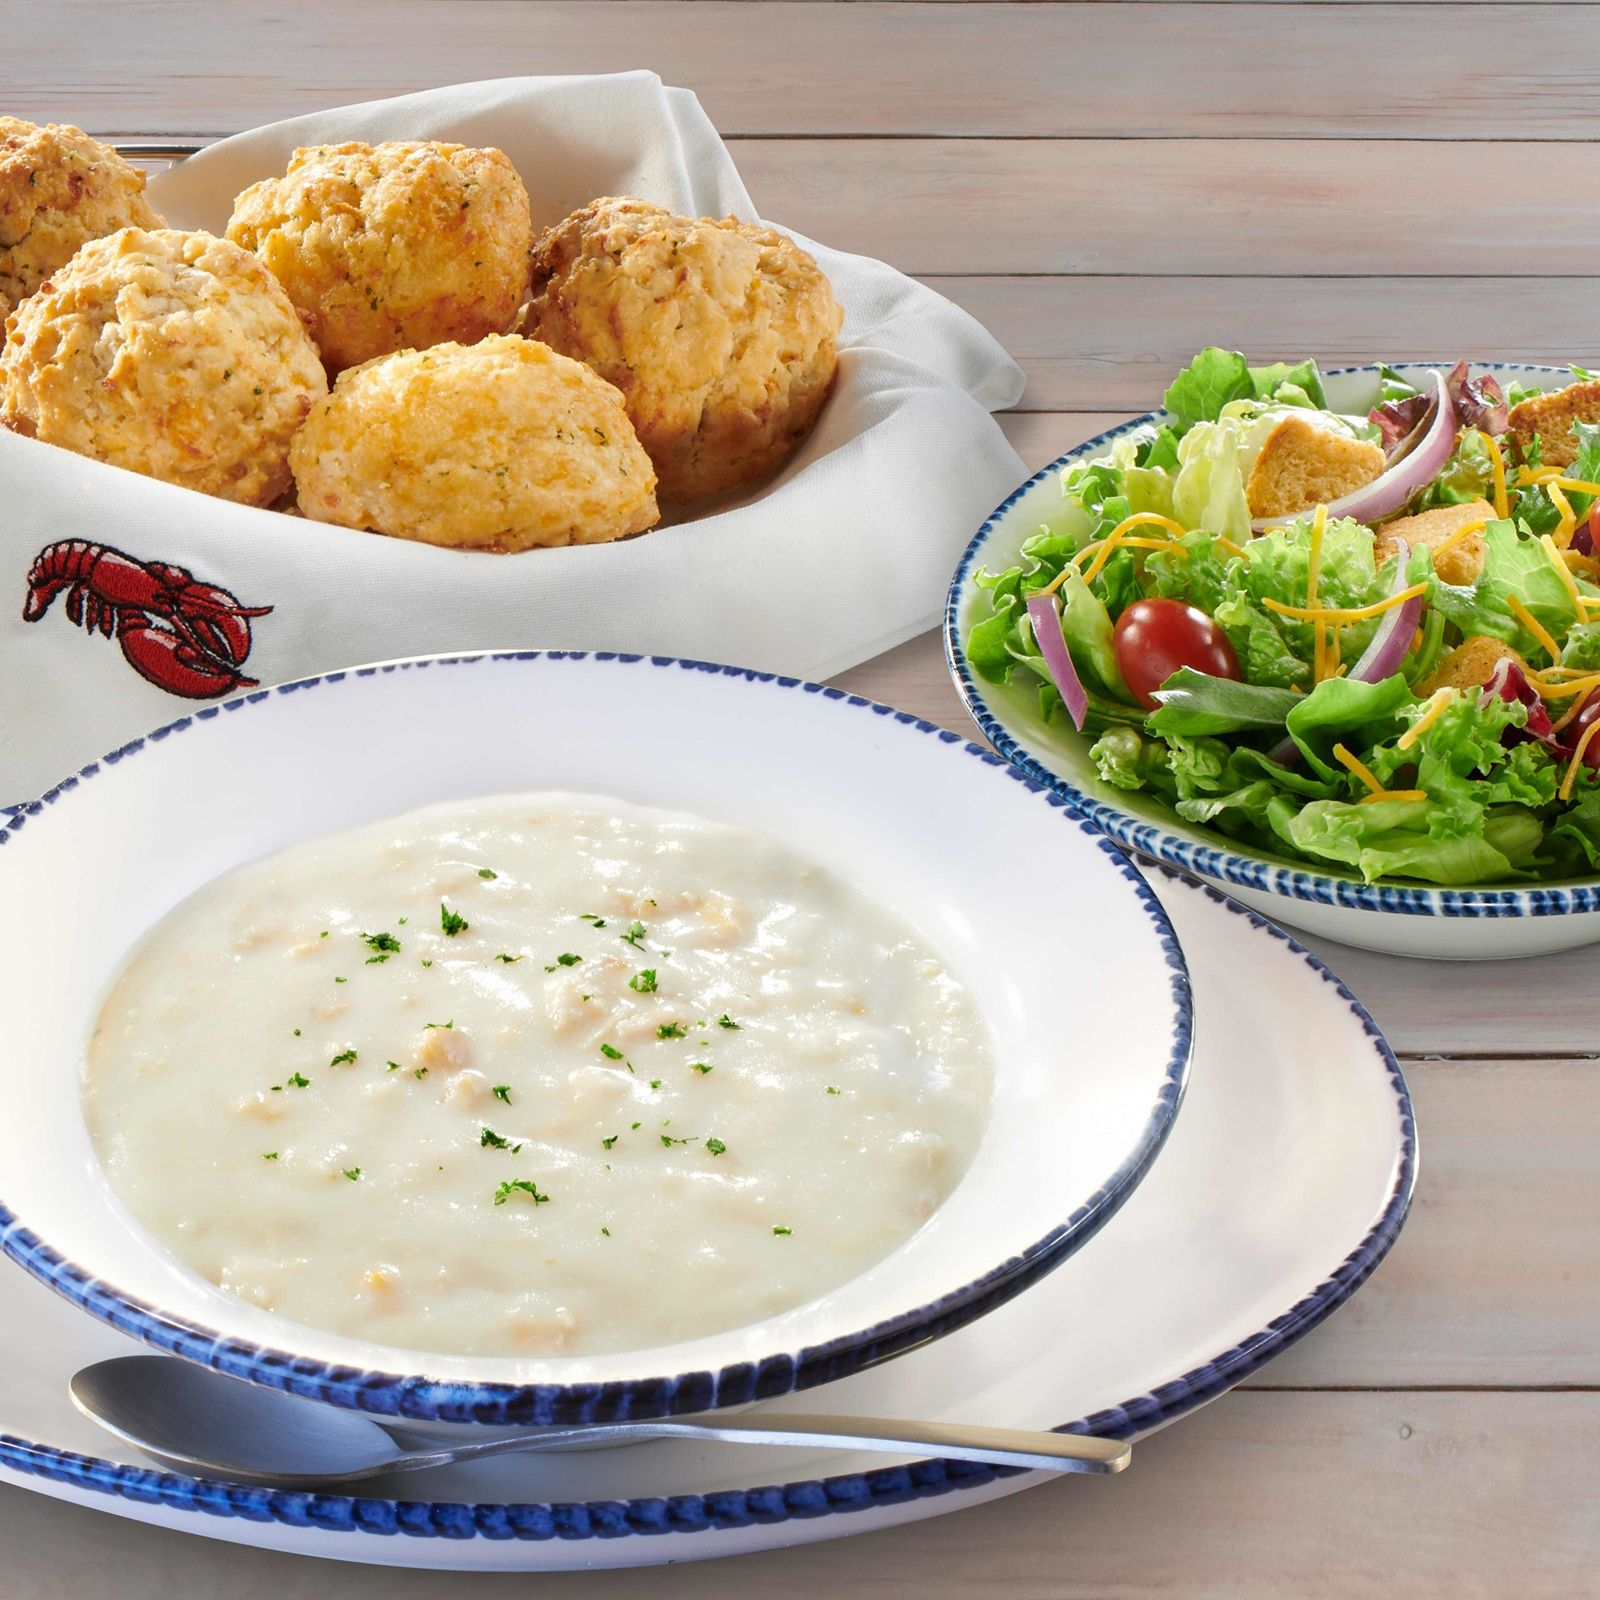 Guests can now enjoy NEW! Endless Soup, Salad, and Biscuits as part of Red Lobster's new Seafood Lover's Lunch menu.